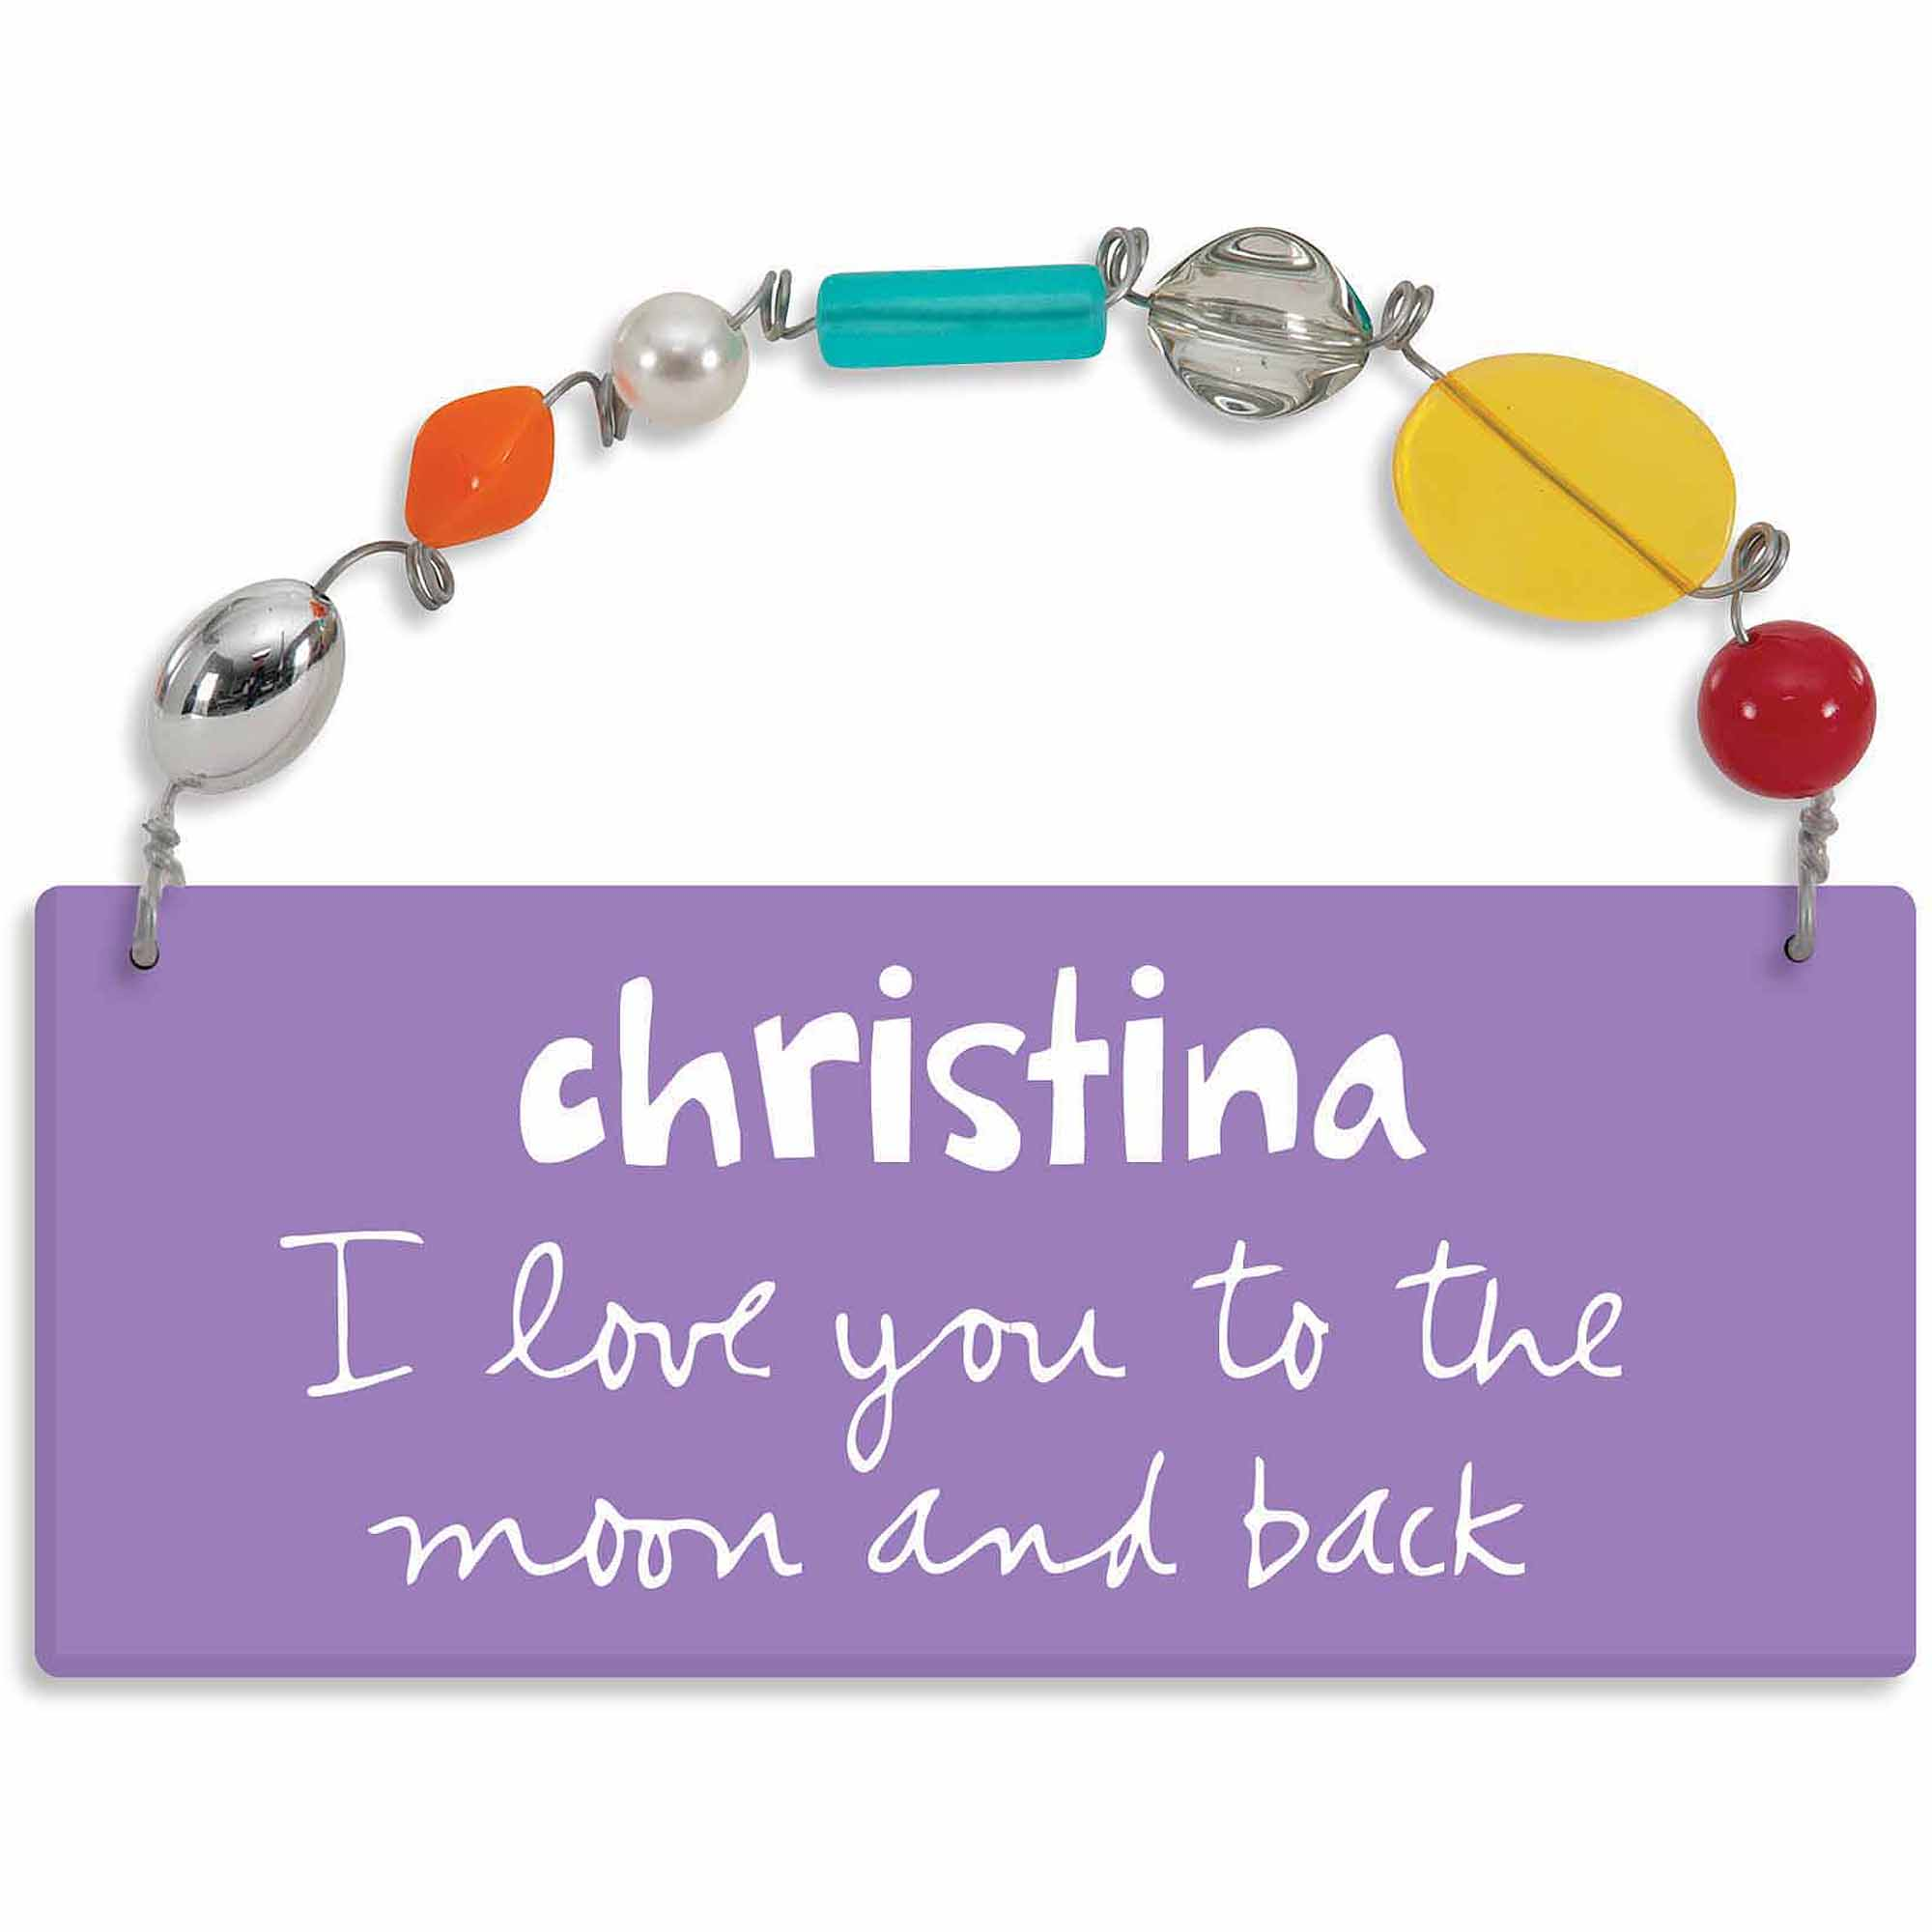 Personalized Sandra Magsamen I Love You To The Moon and Back Wall Plaque